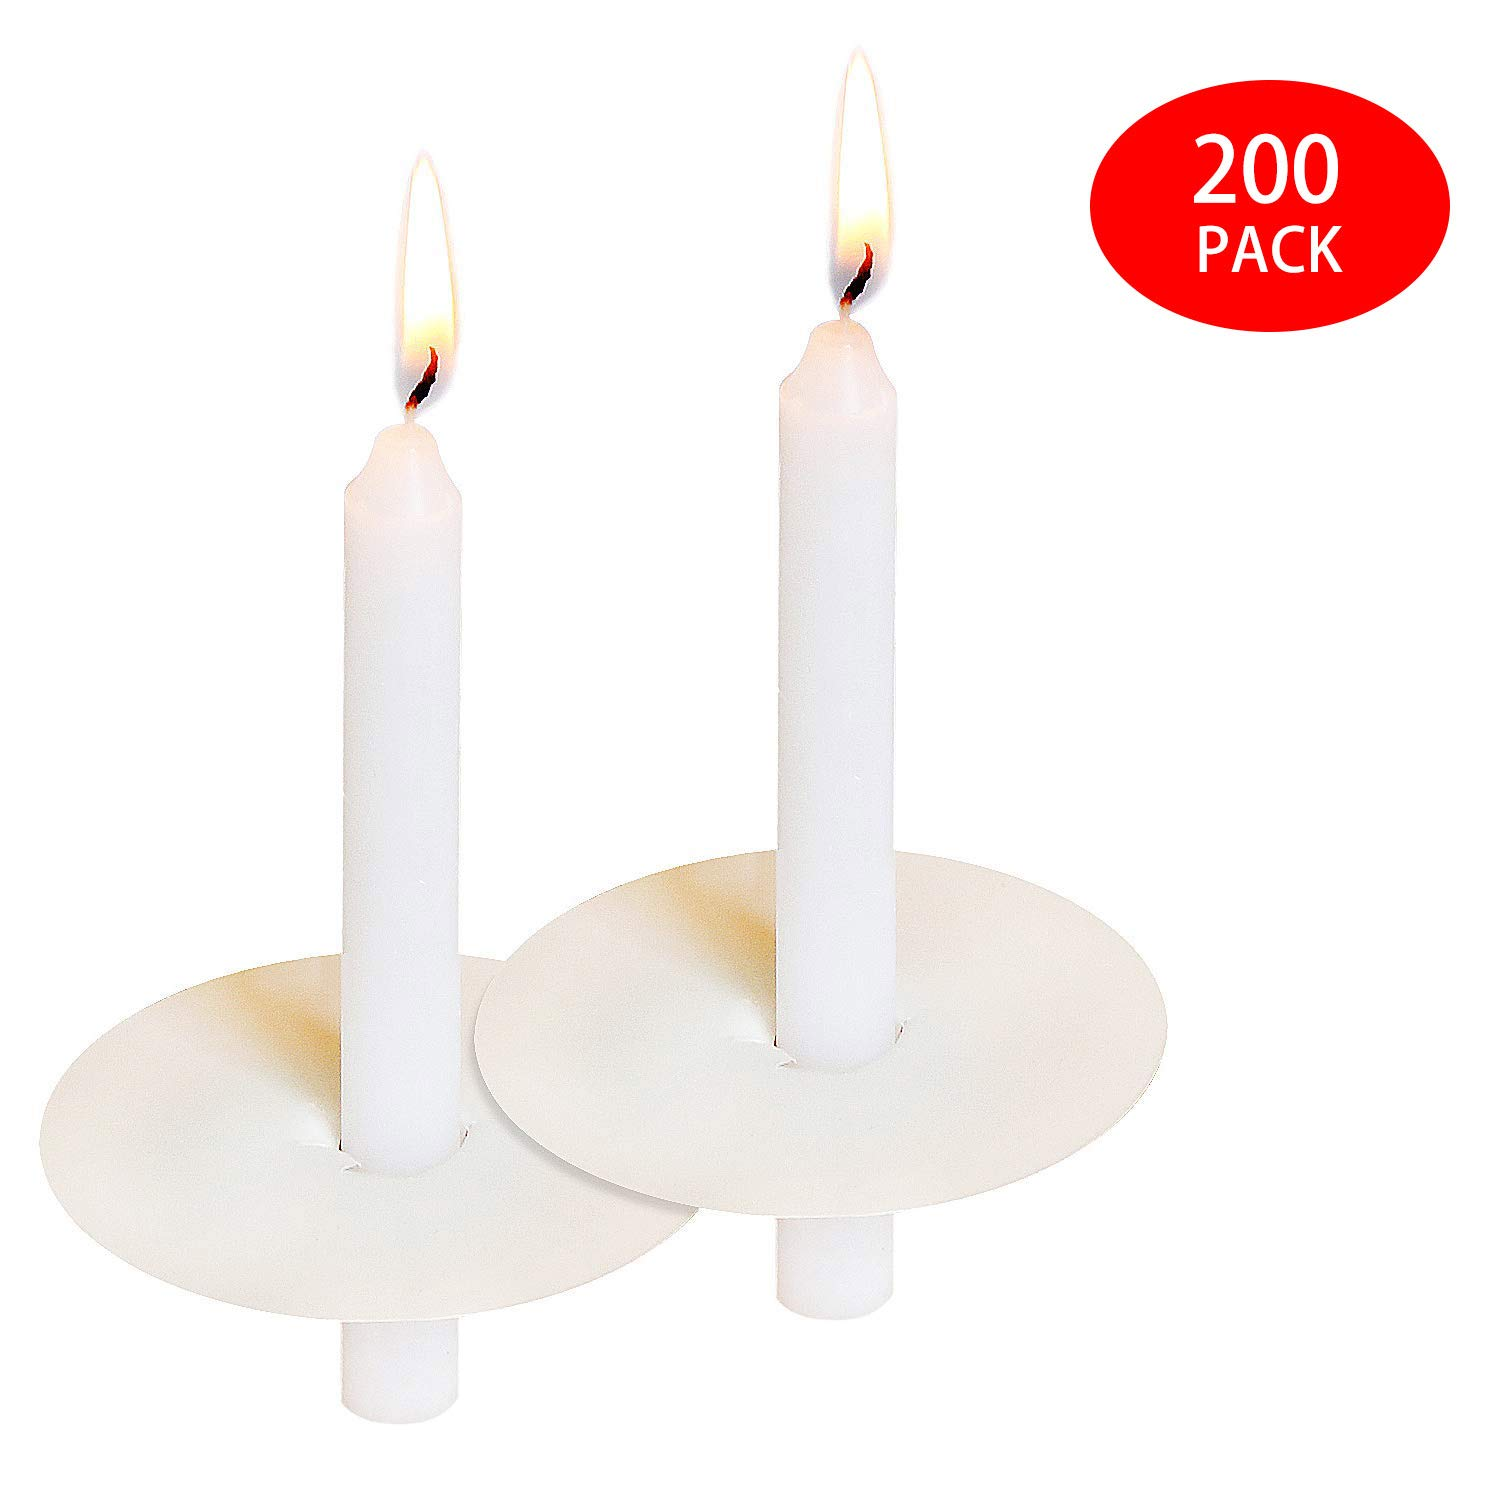 YYHC 200 Church Candles with Drip Protectors for Devotional Candlelight Vigil Service, Box of 200 Candles, Unscented White 5'' H X 1/2 D, No Smoke by YYHC